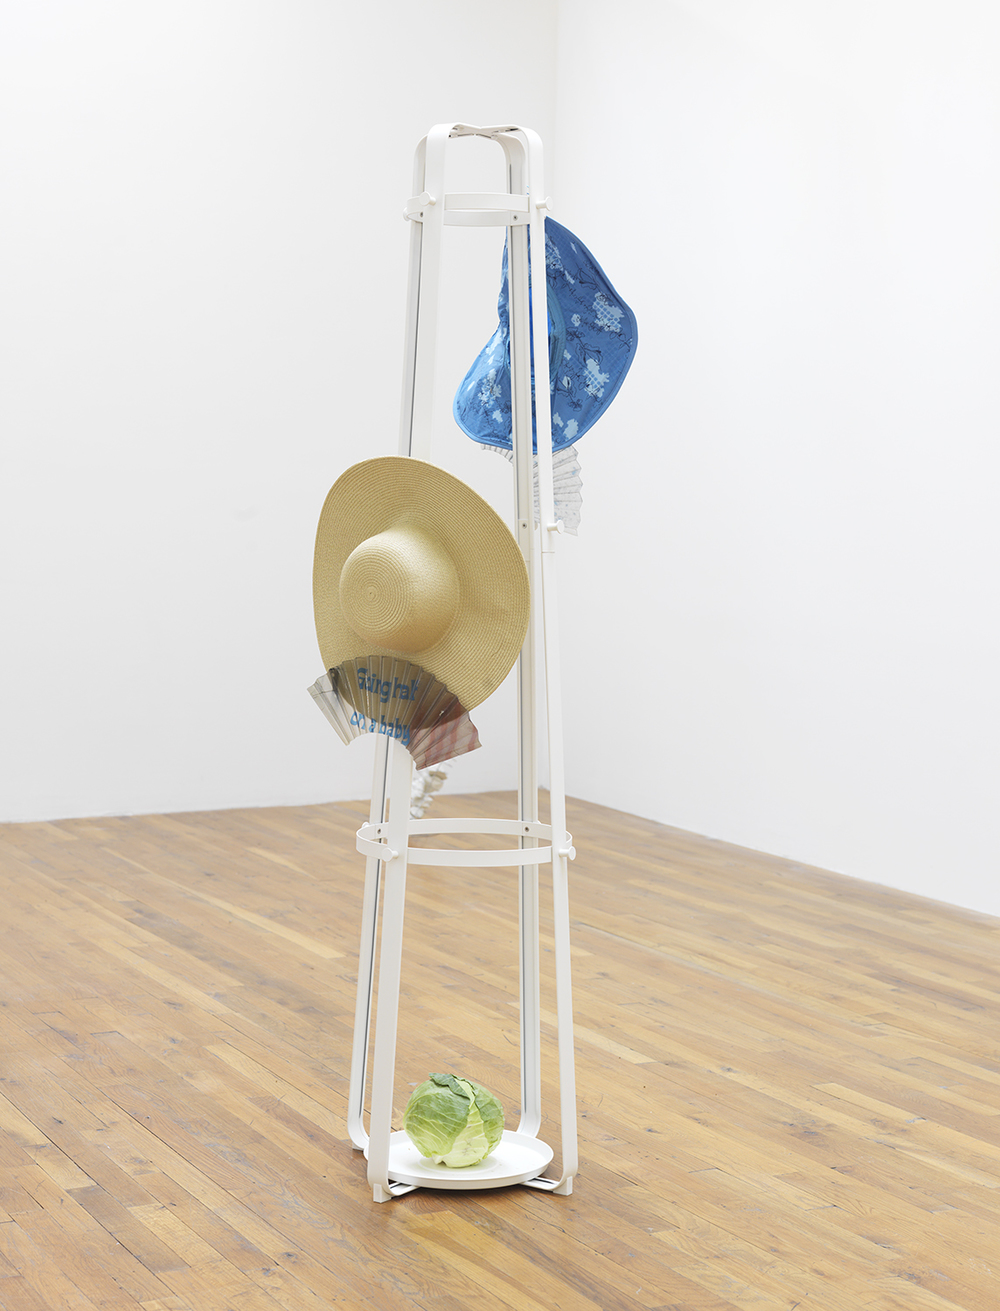 Amy Yao Seasonal Ikebana Pop-Up Shop, No.1 (Husband From Hell!!!), 2014 Metal, straw, cotton, resin, digital print and lettuce 67 x 24 x 24 inches